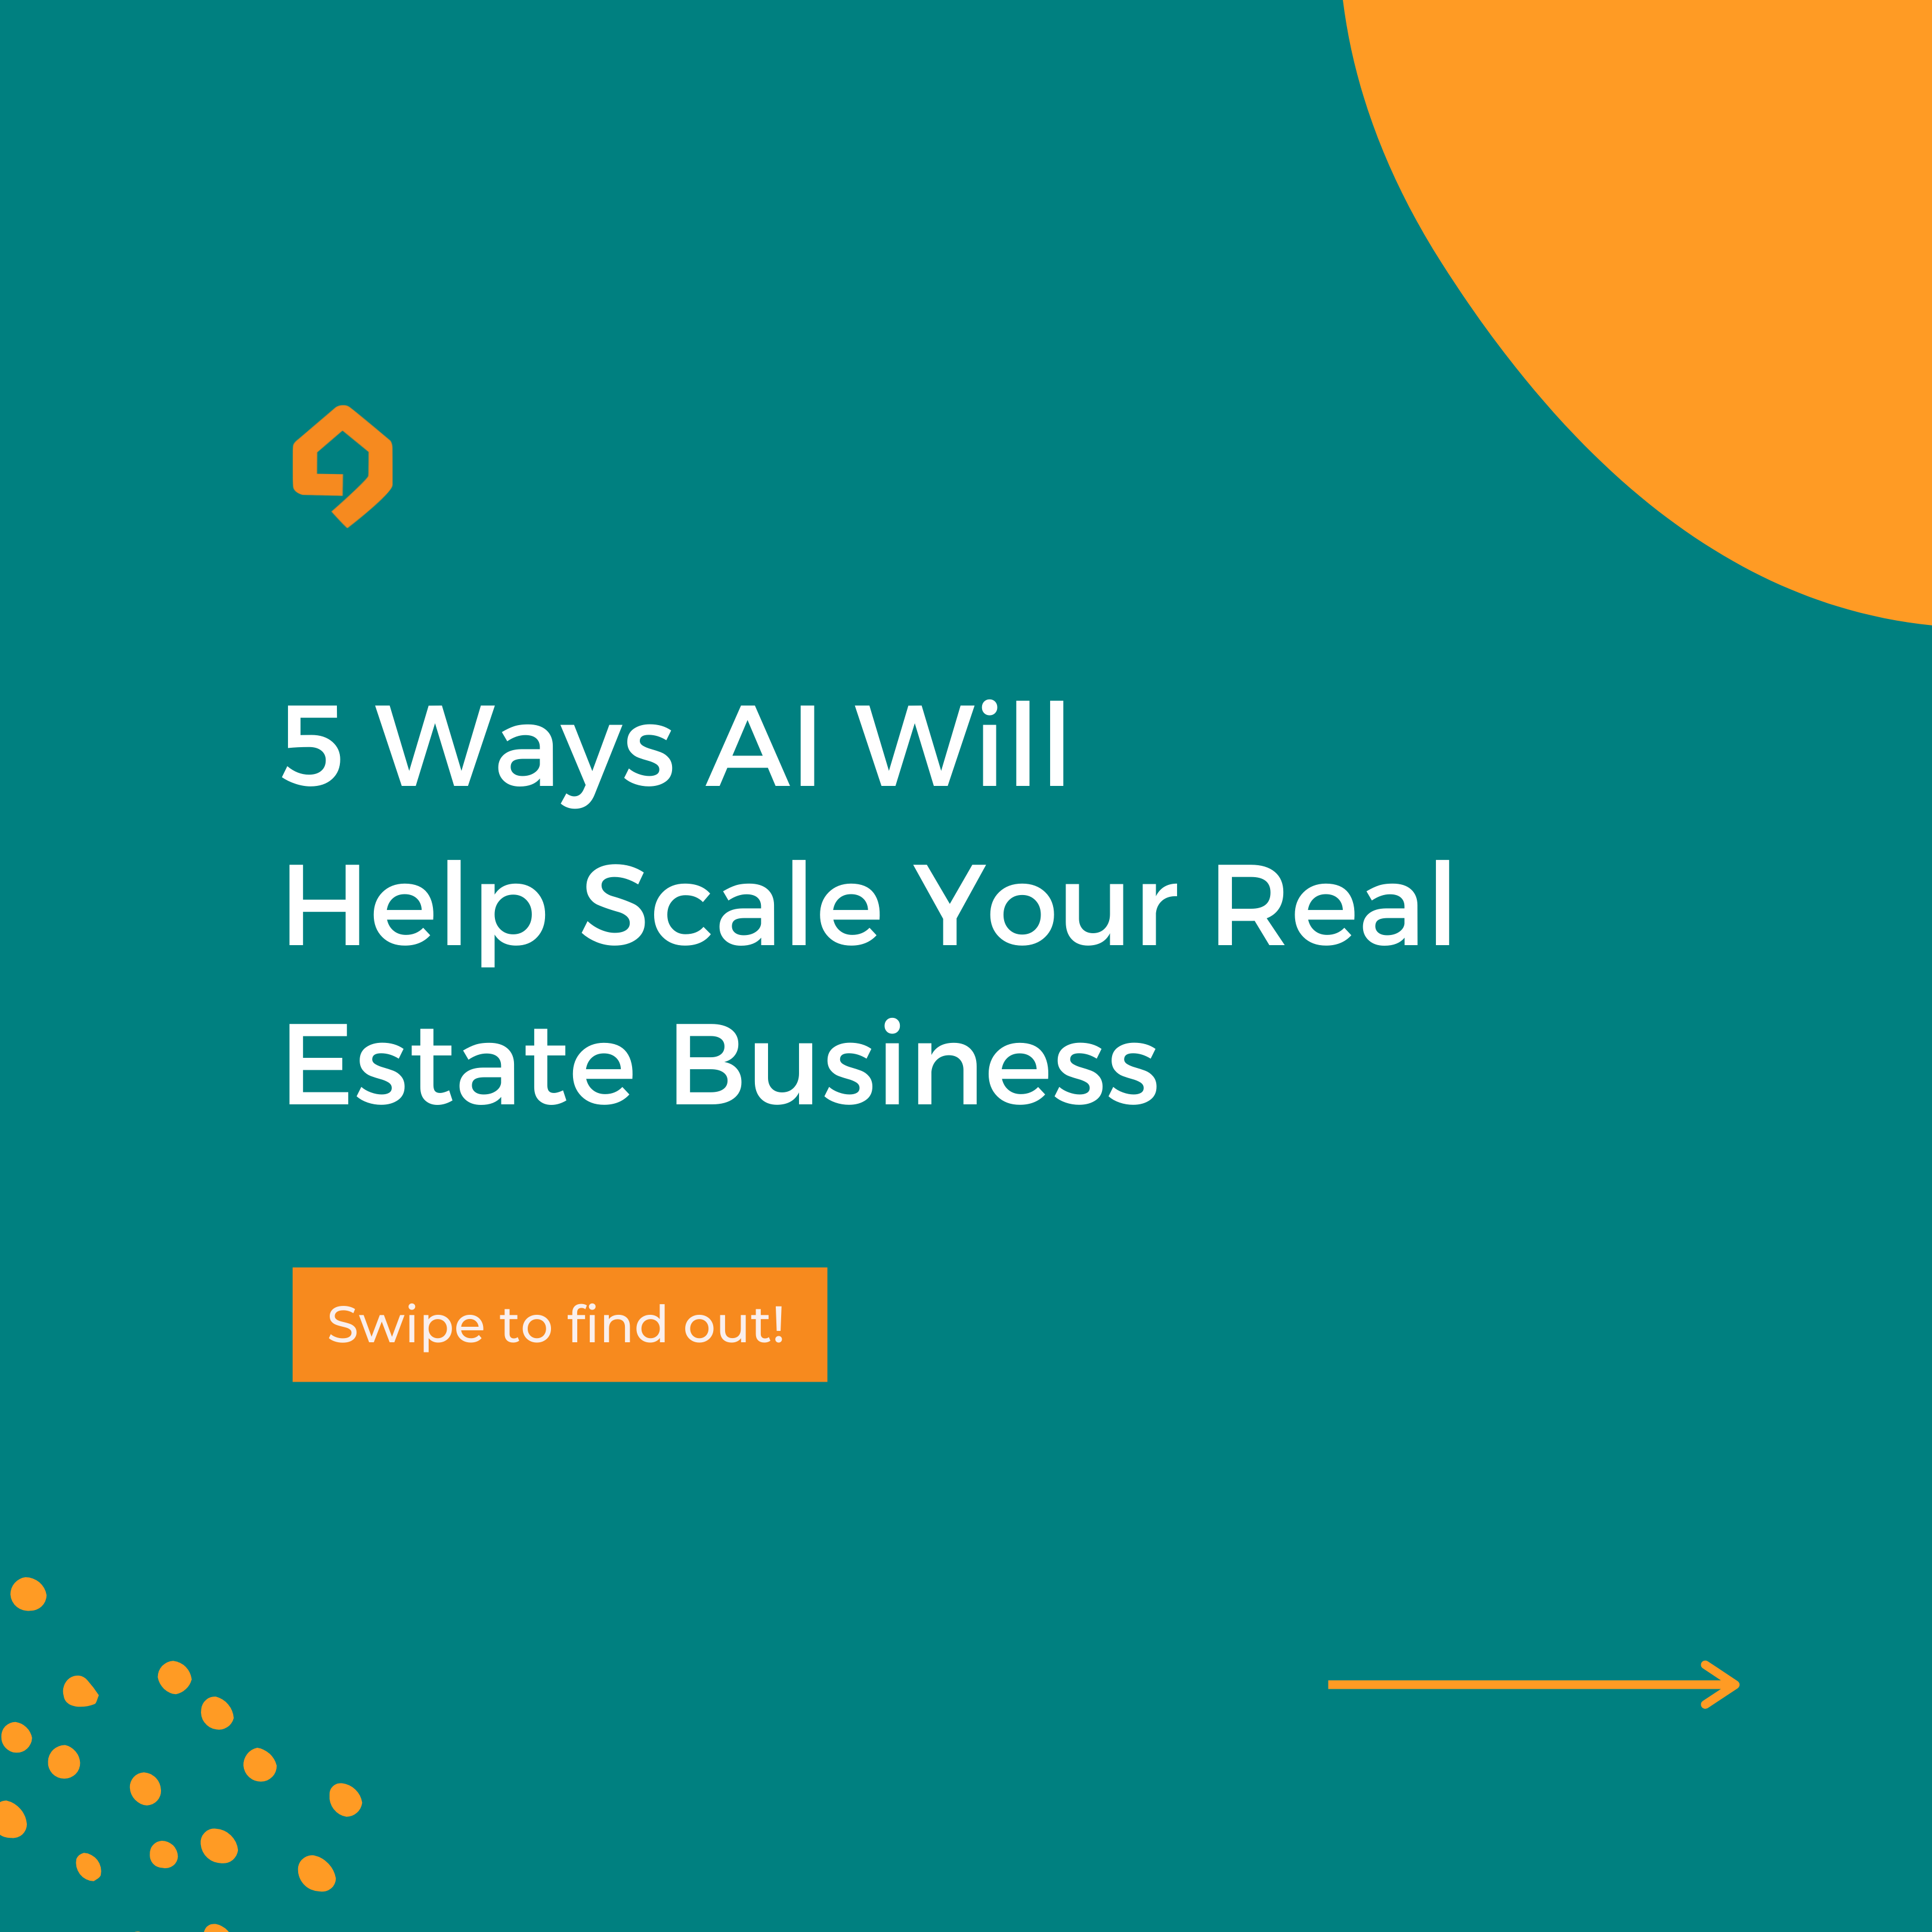 5 Ways AI Will Help Scale Your Business